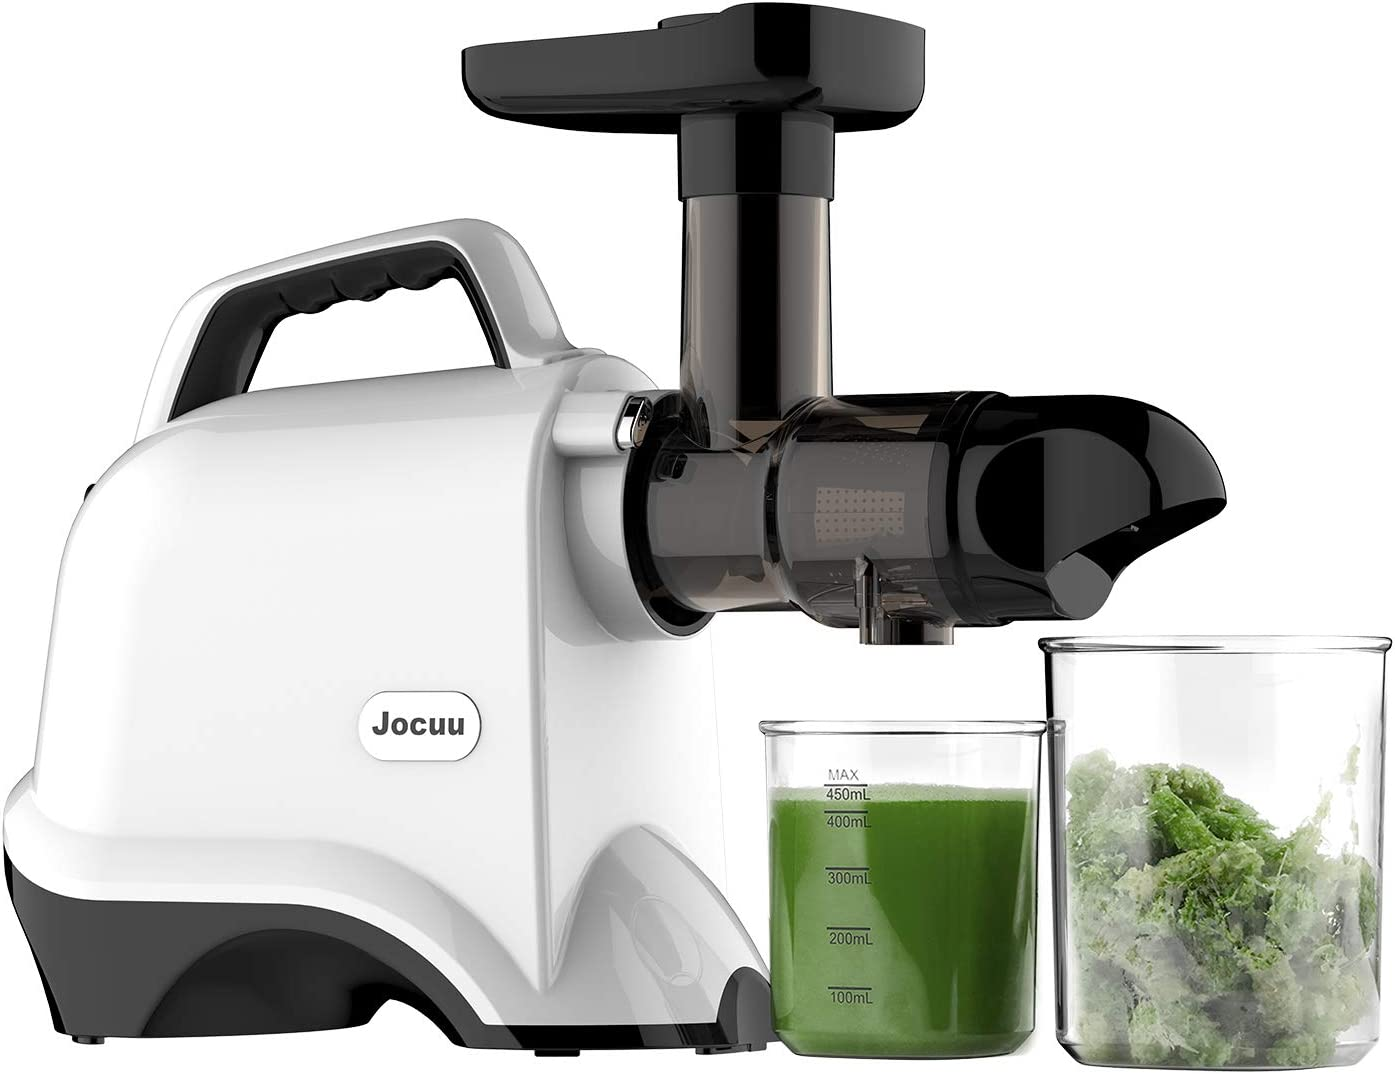 Jocuu Juicer Machines, Slow Masticating Juicer Extractor Easy to Clean, Cold Press Juicer with Quiet Motor, Reverse Function, BPA-Free, with Brush and Recipes, for Fruits and Vegtables, White